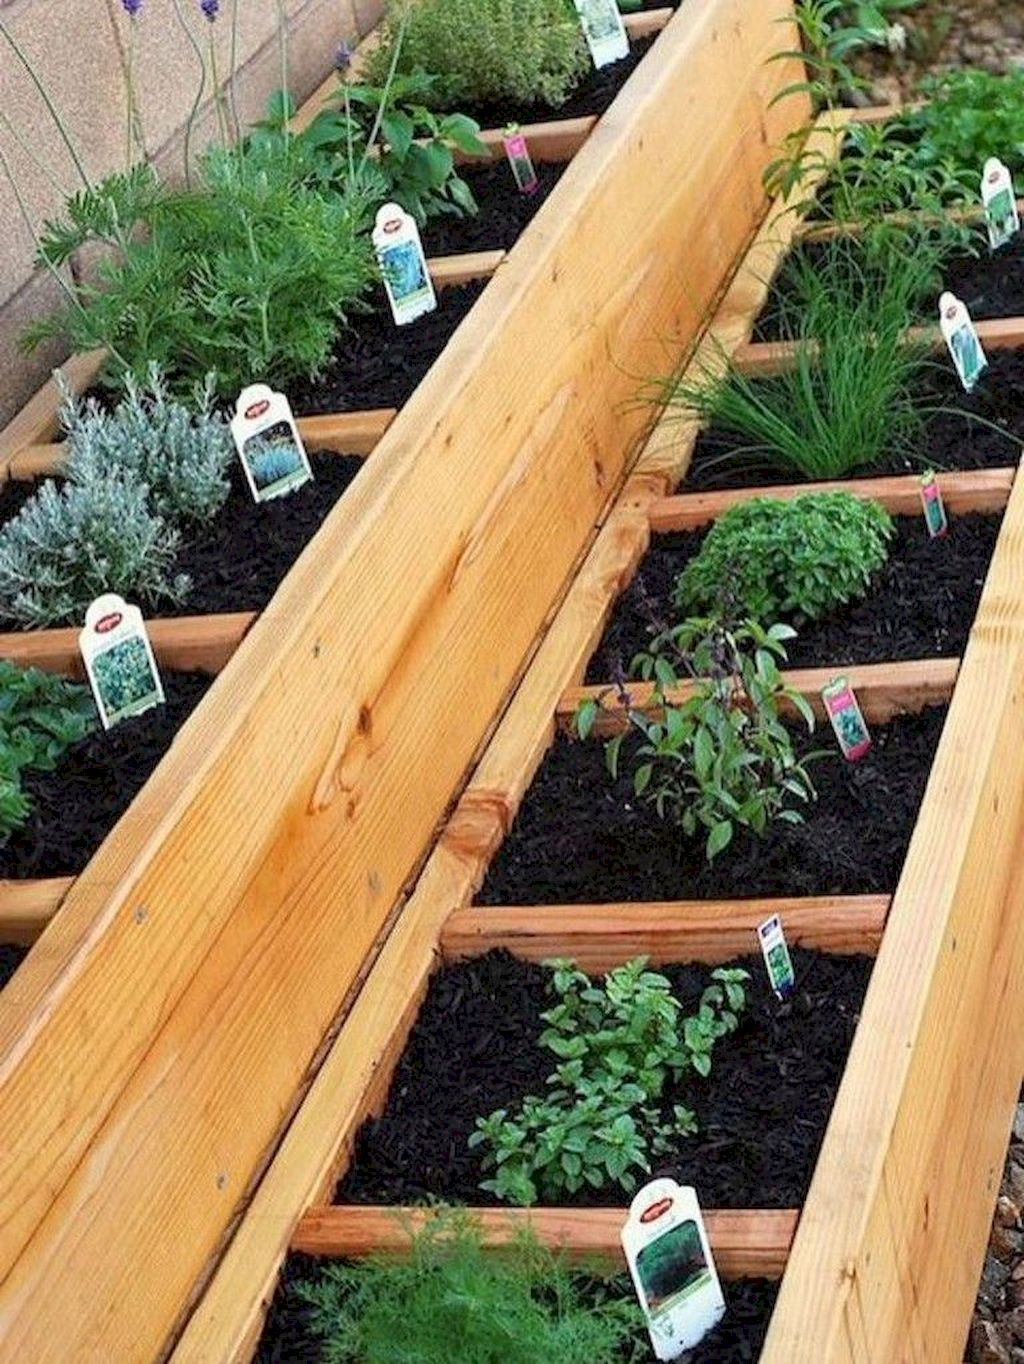 Awesome 55 Diy Raised Garden Bed Plans Ideas You Can Build Https Homespecially Com 55 Diy Raised Bed Herb Garden Raised Herb Garden Small Vegetable Gardens